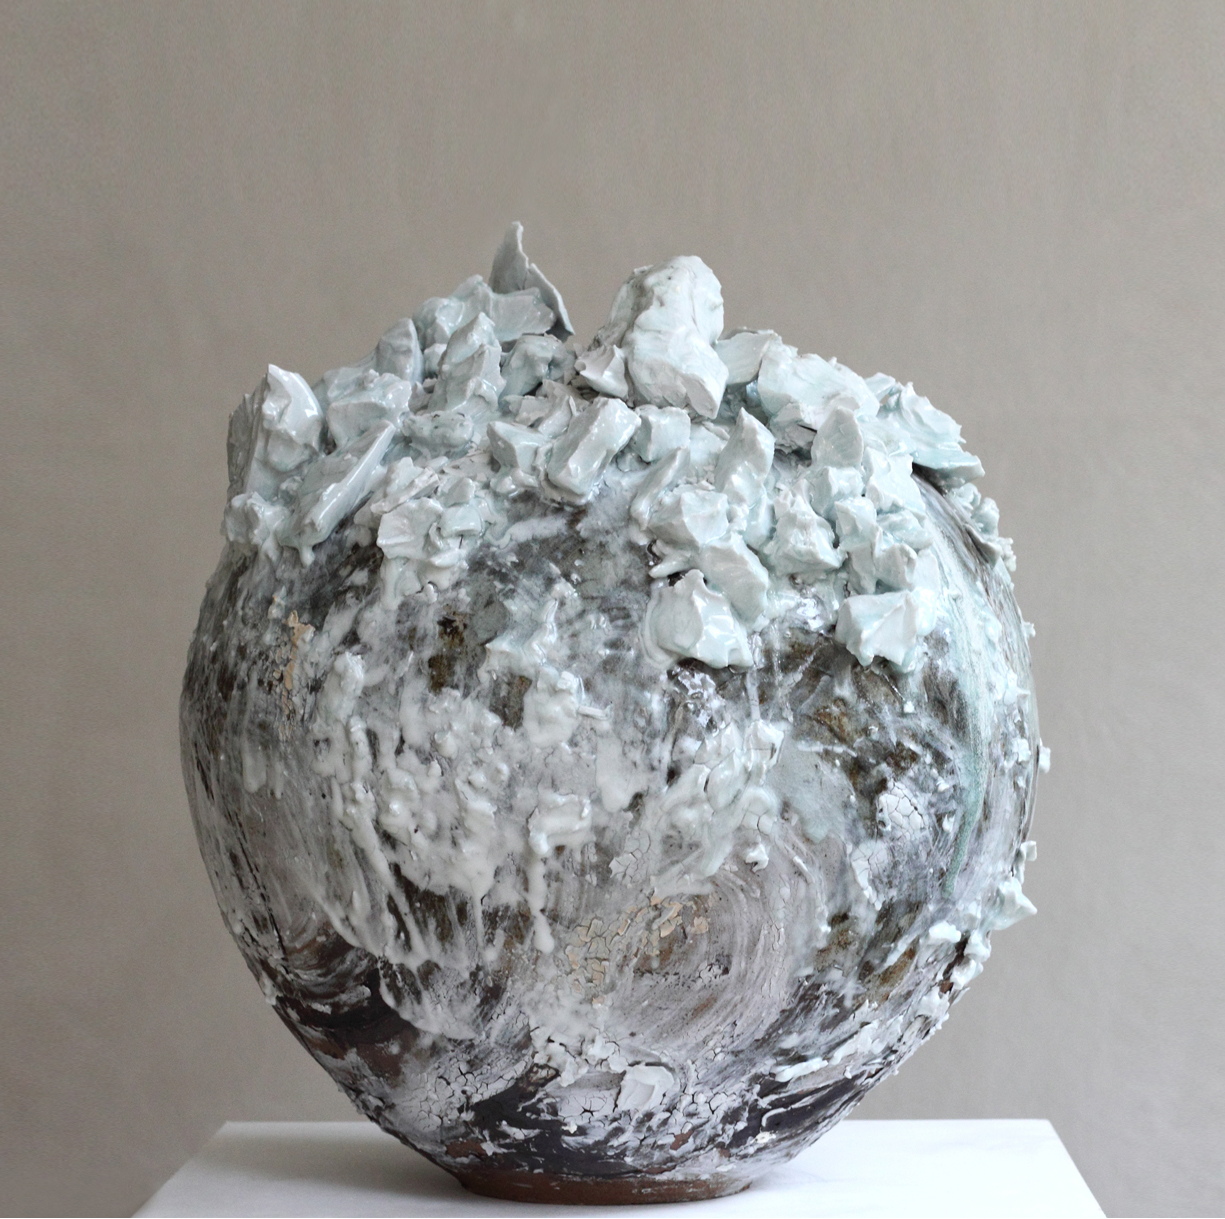 Extra-Large-Moon-Jar-Akiko-Hirai-2020.-Ceramics-2020.-Courtesy-of-Beaux-Arts-Bath